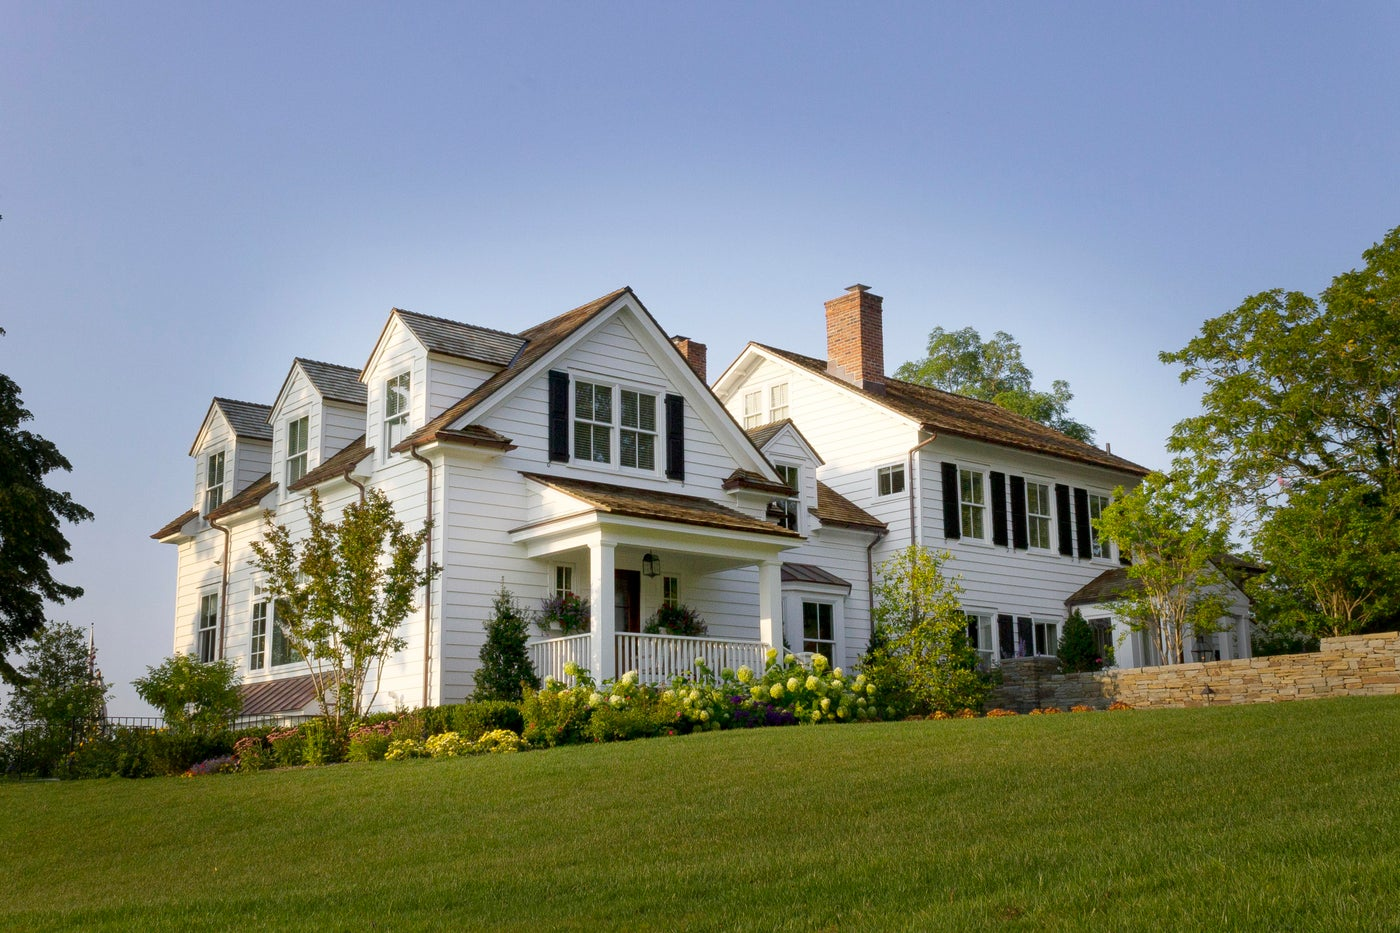 Whole house transformation of historic home on the Long Island Sound